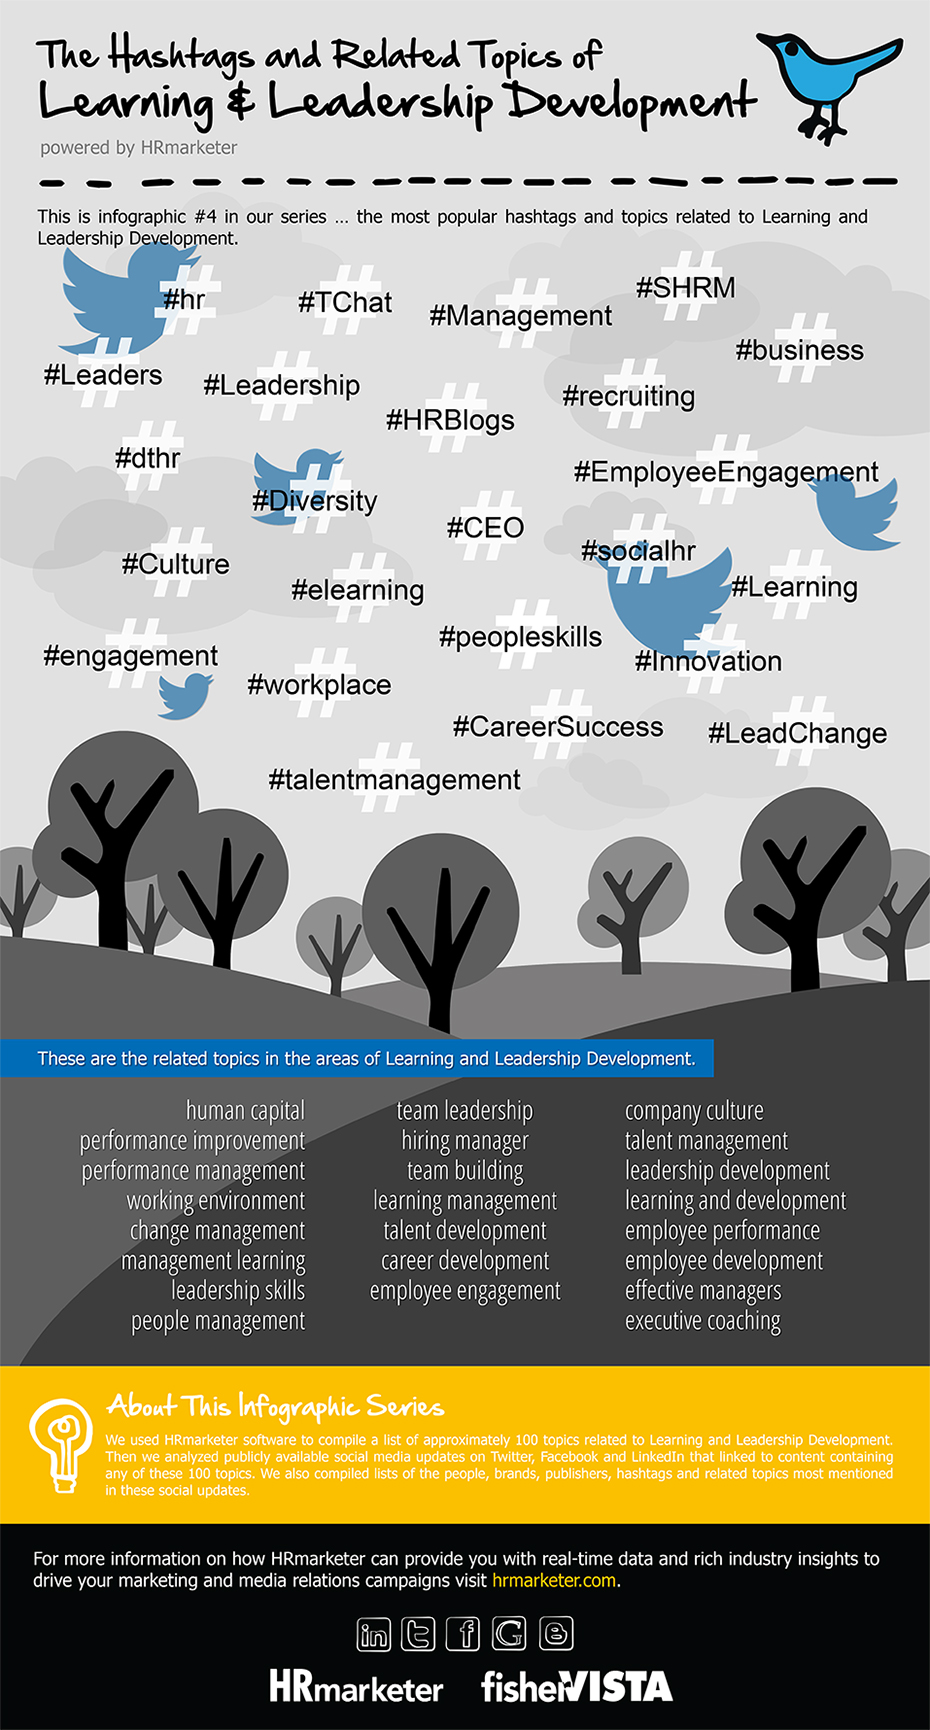 Hrmarketer.com | Infographic | The Hashtags and Related Topics of Learning & Leadership Development